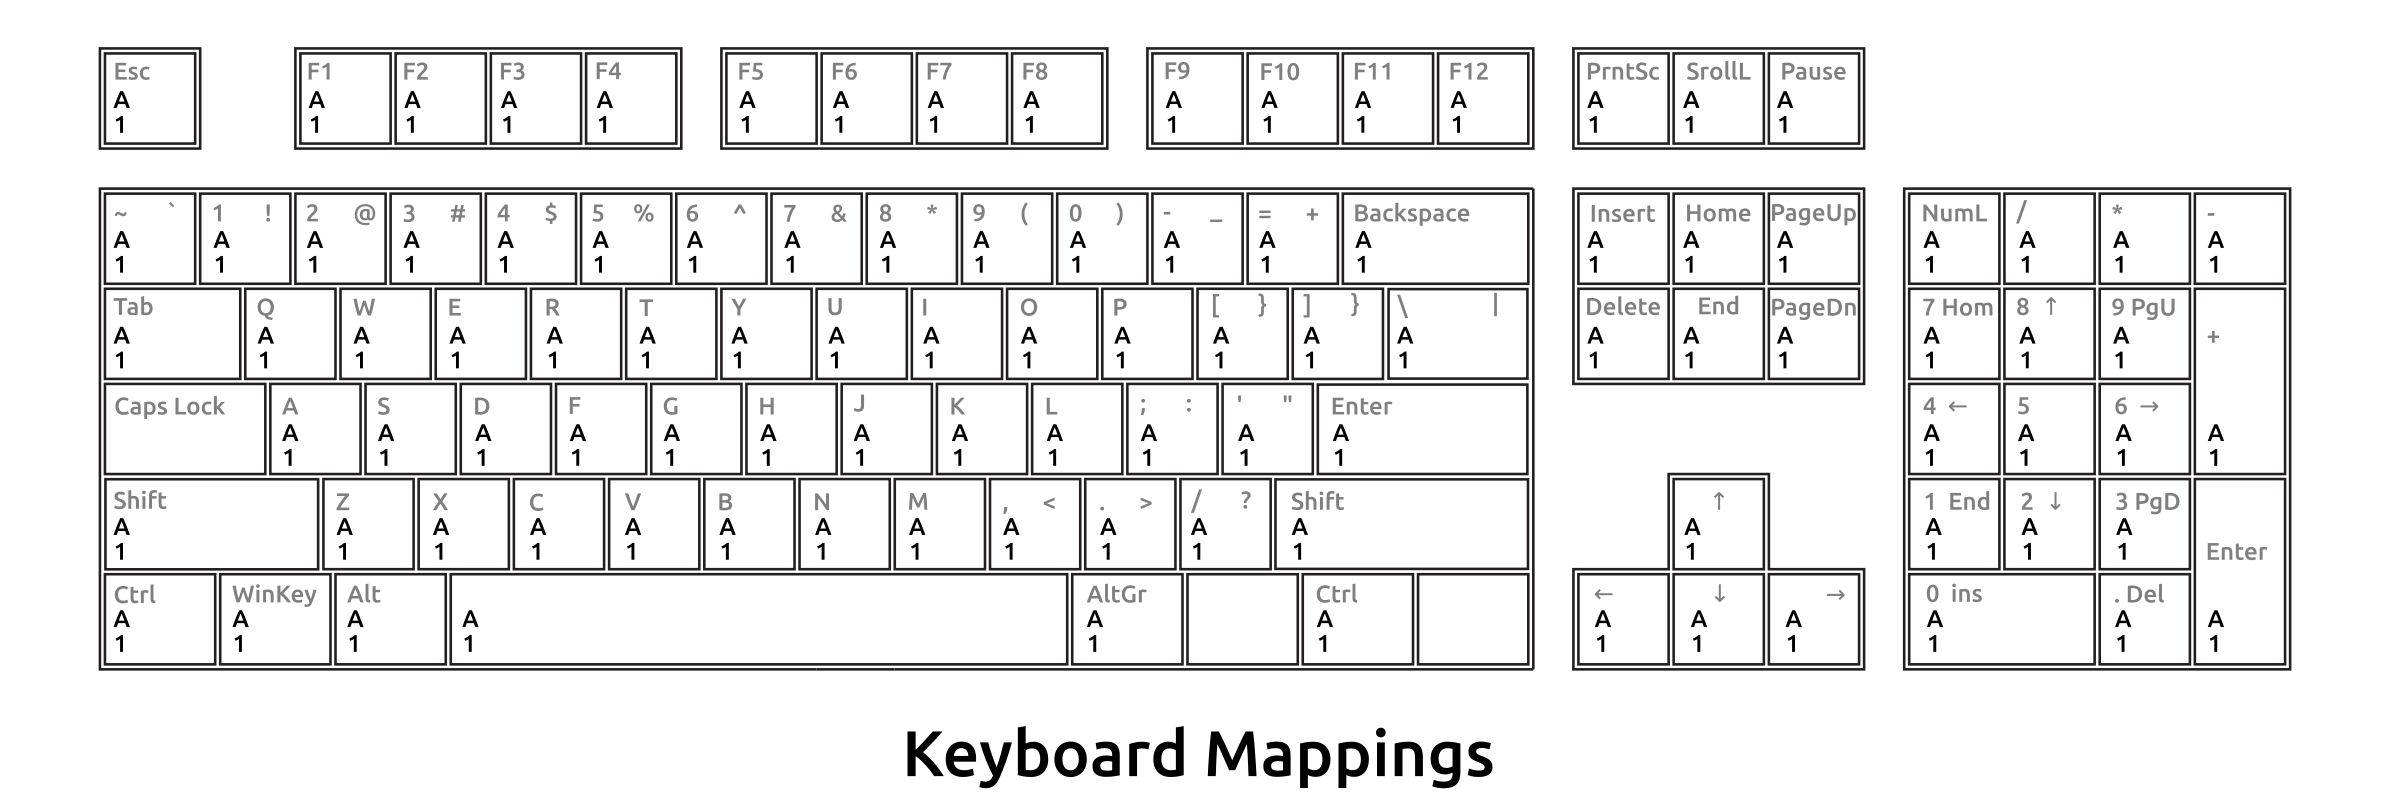 Number 1 clipart outline. Keyboard mappings big image